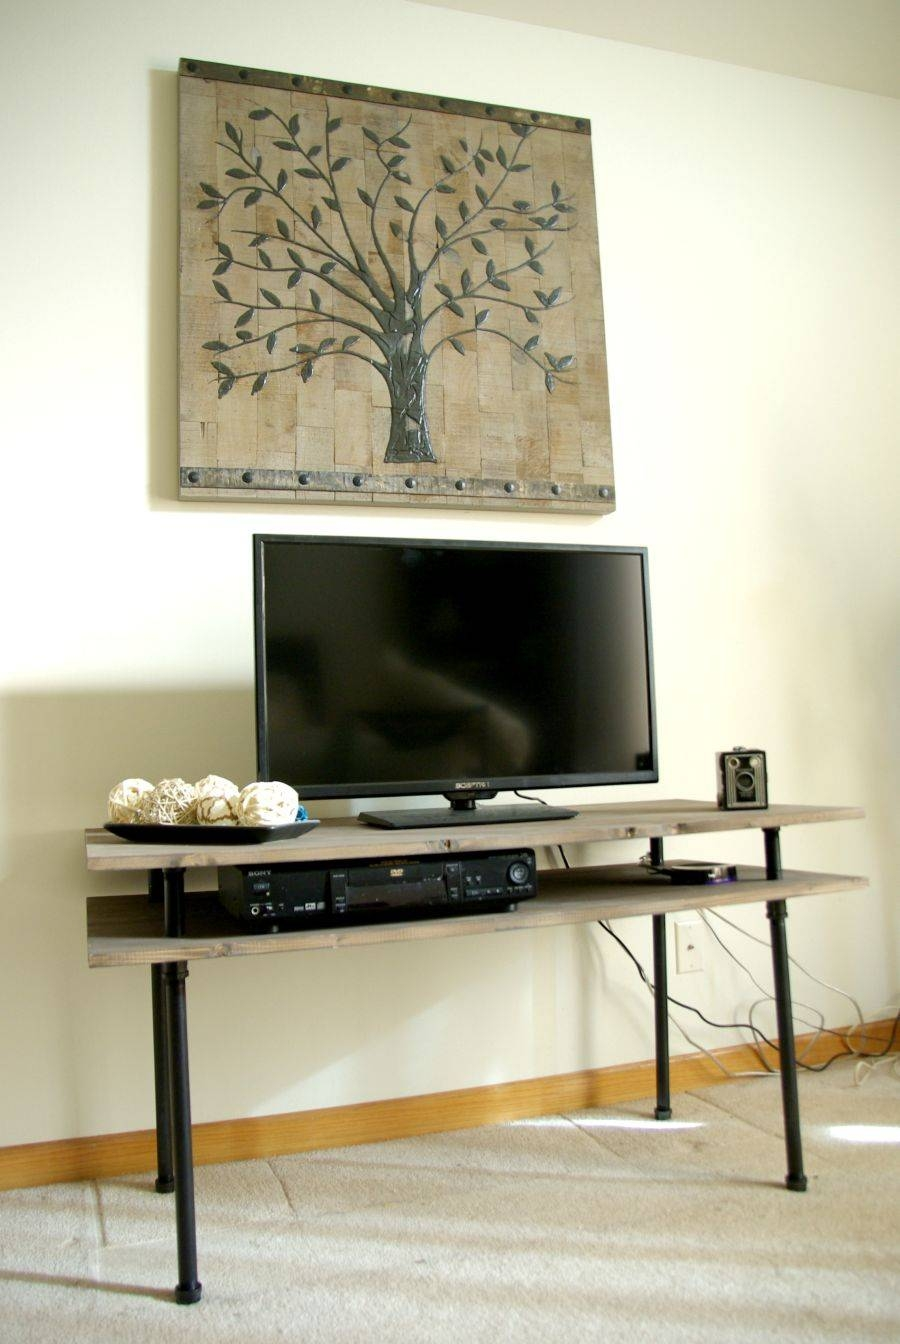 13 Diy Plans For Building A Tv Stand | Guide Patterns Within Telly Tv Stands (View 7 of 15)